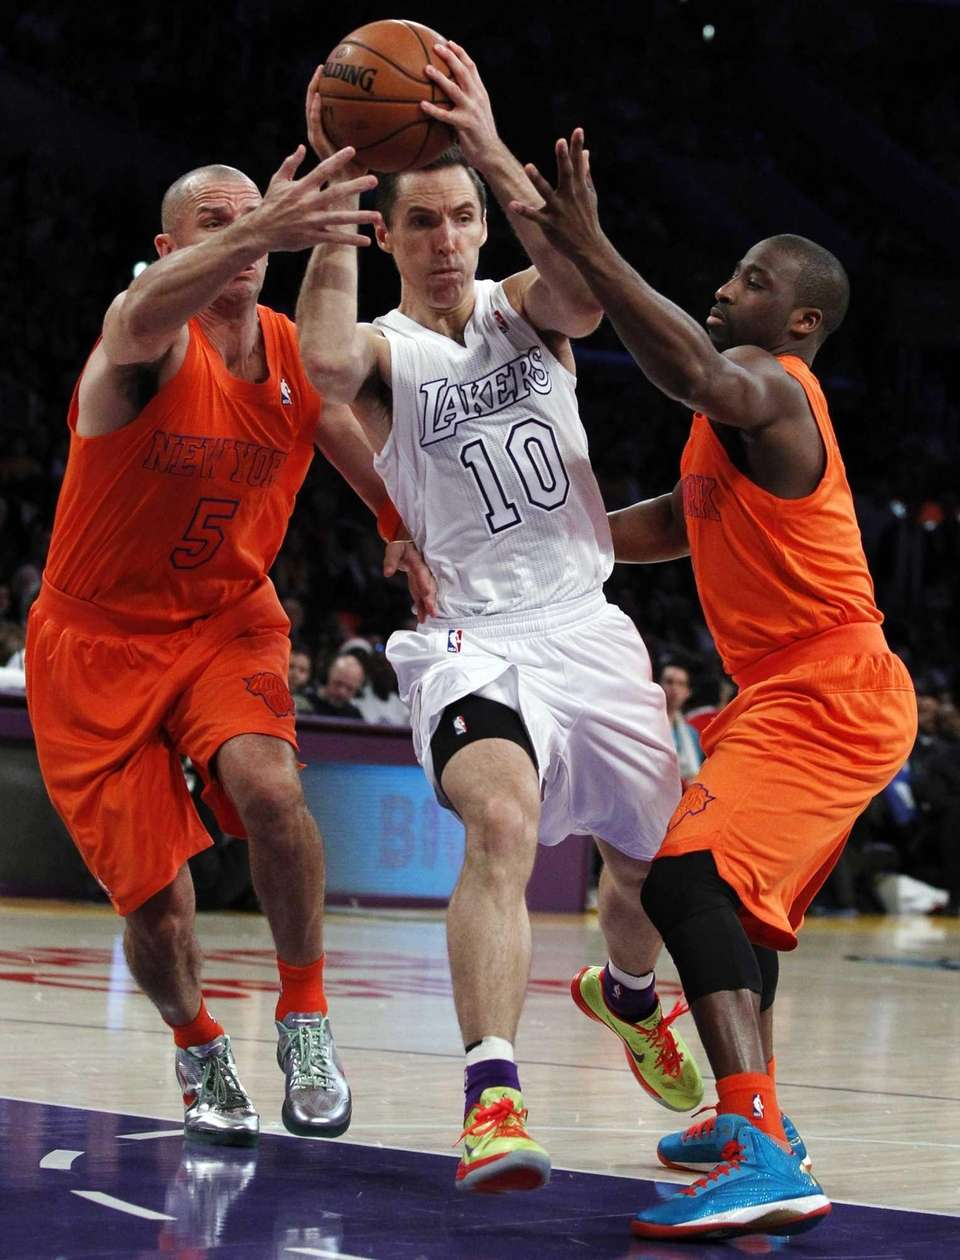 Los Angeles Lakers guard Steve Nash, center, drives